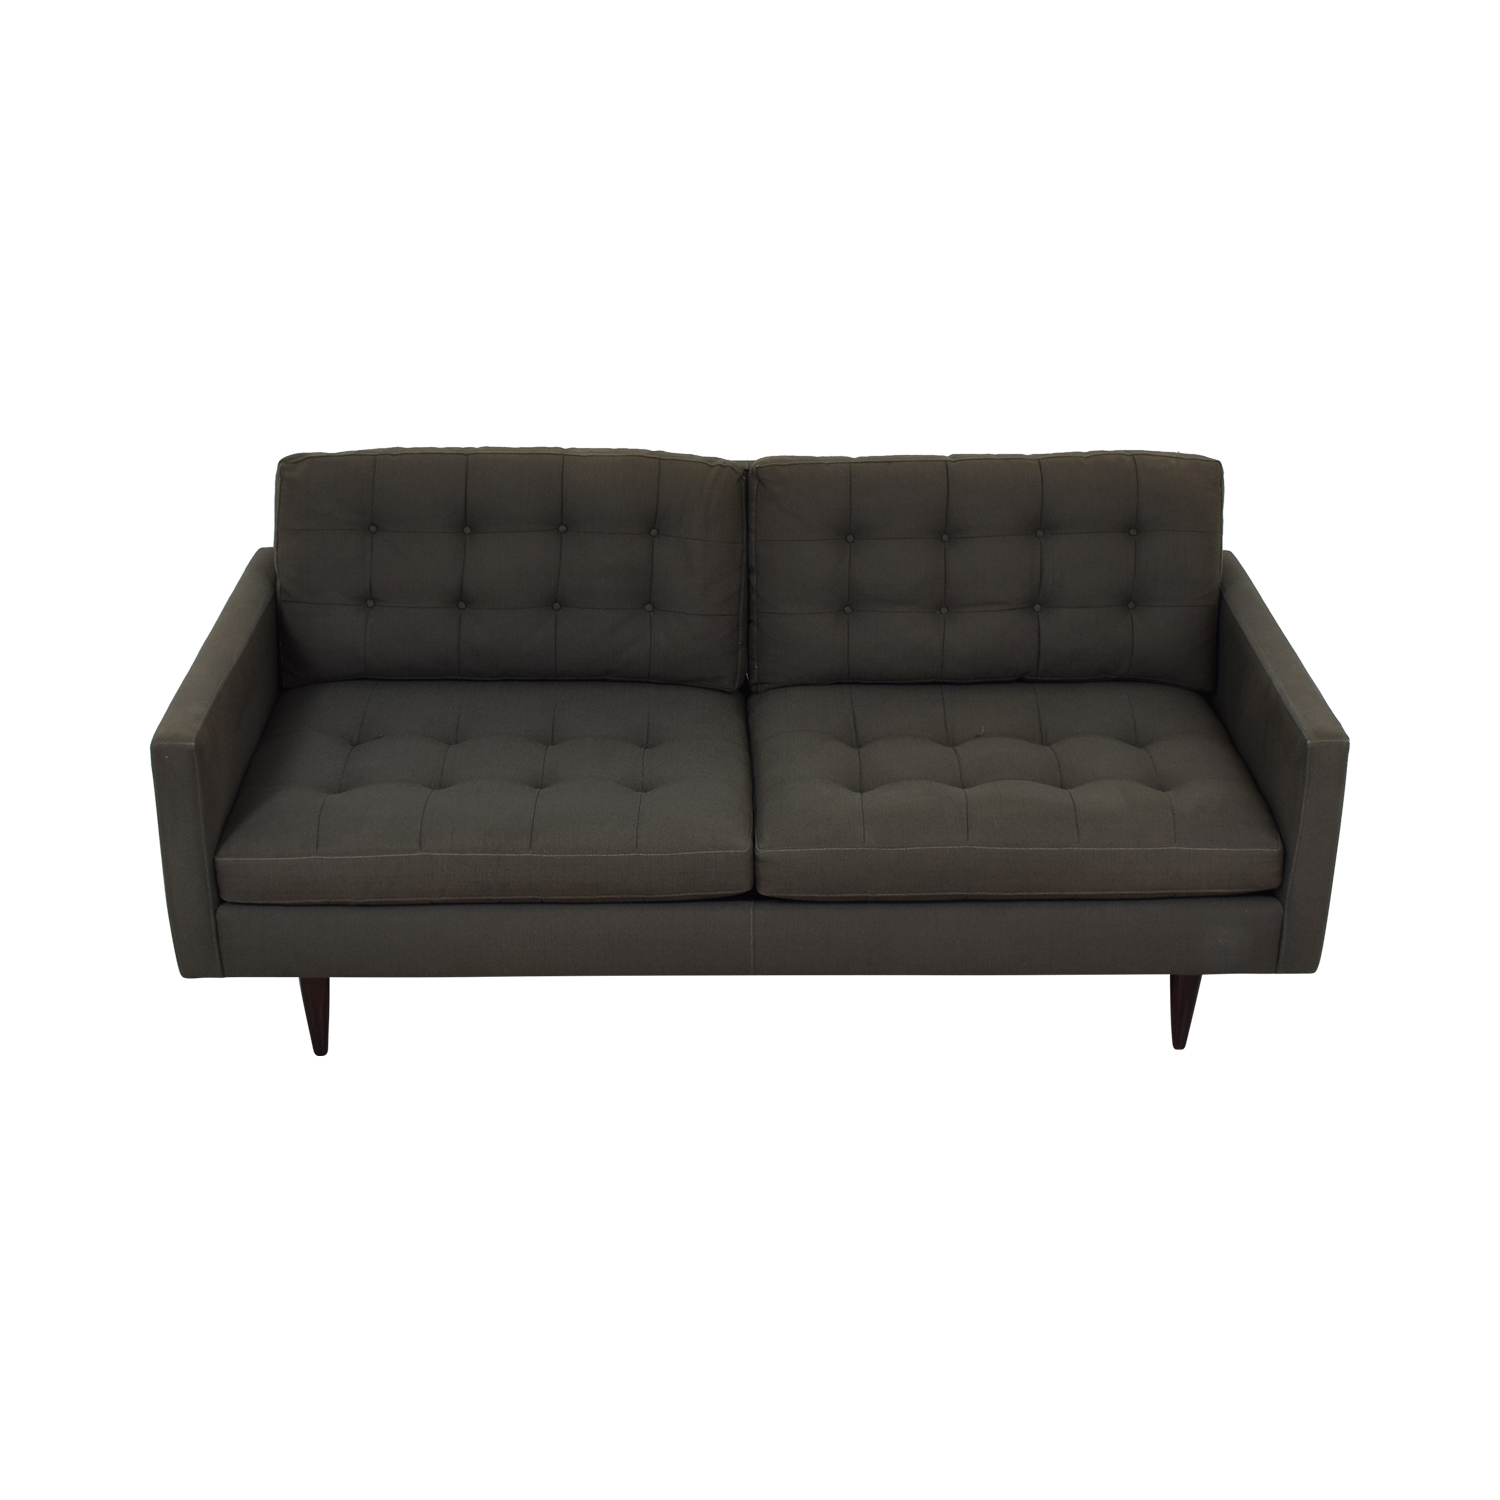 buy Crate & Barrel Crate & Barrel Petrie Grey Tufted Two-Cushion Sofa online